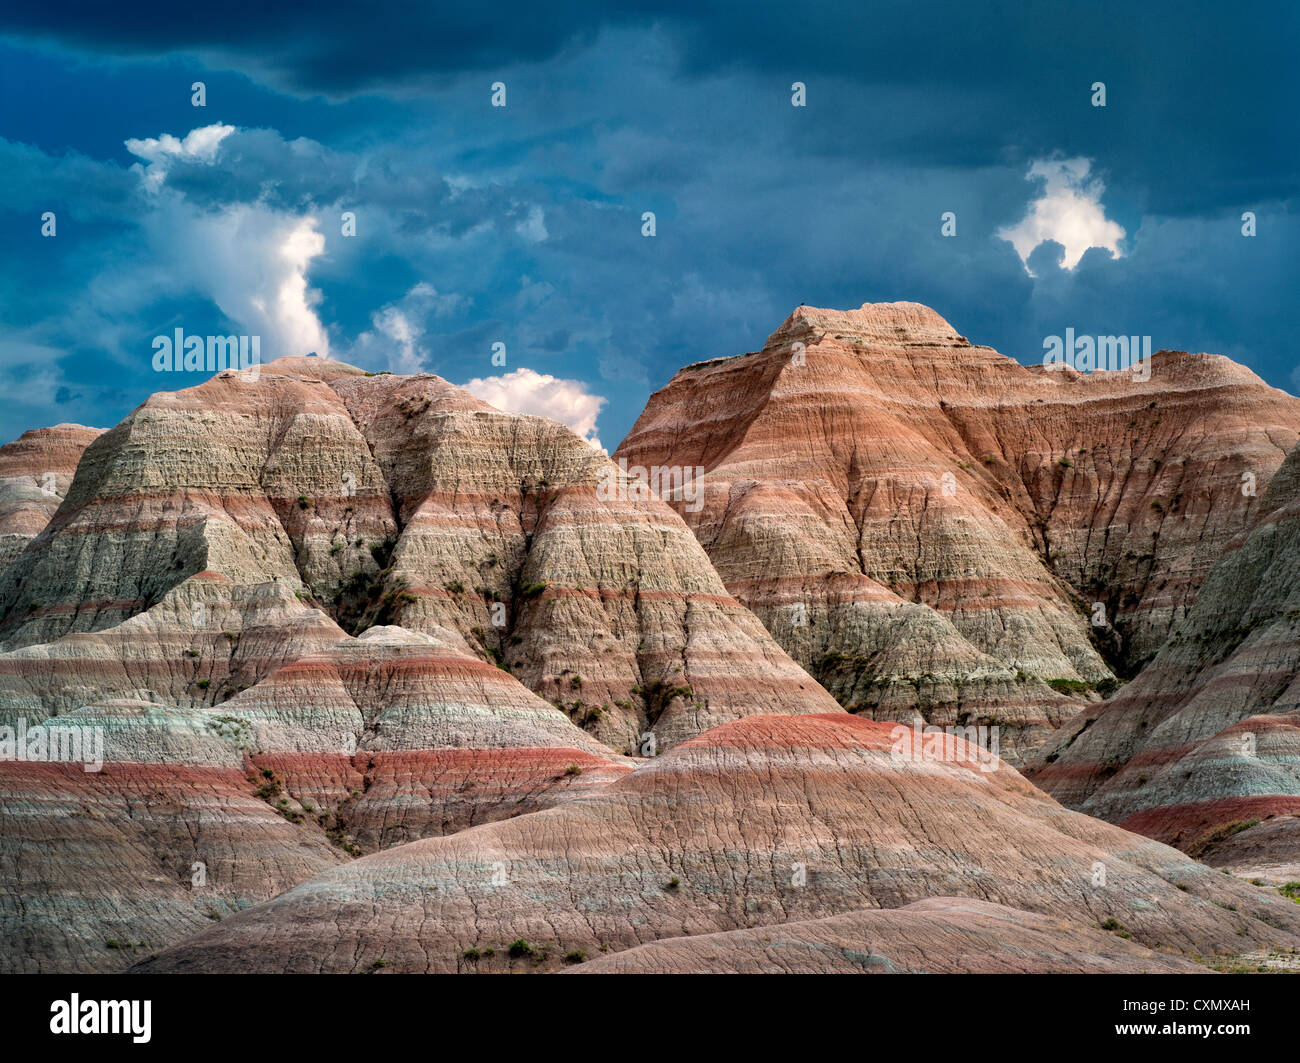 Colorful rocks at Badlands National Park, South Dakota - Stock Image